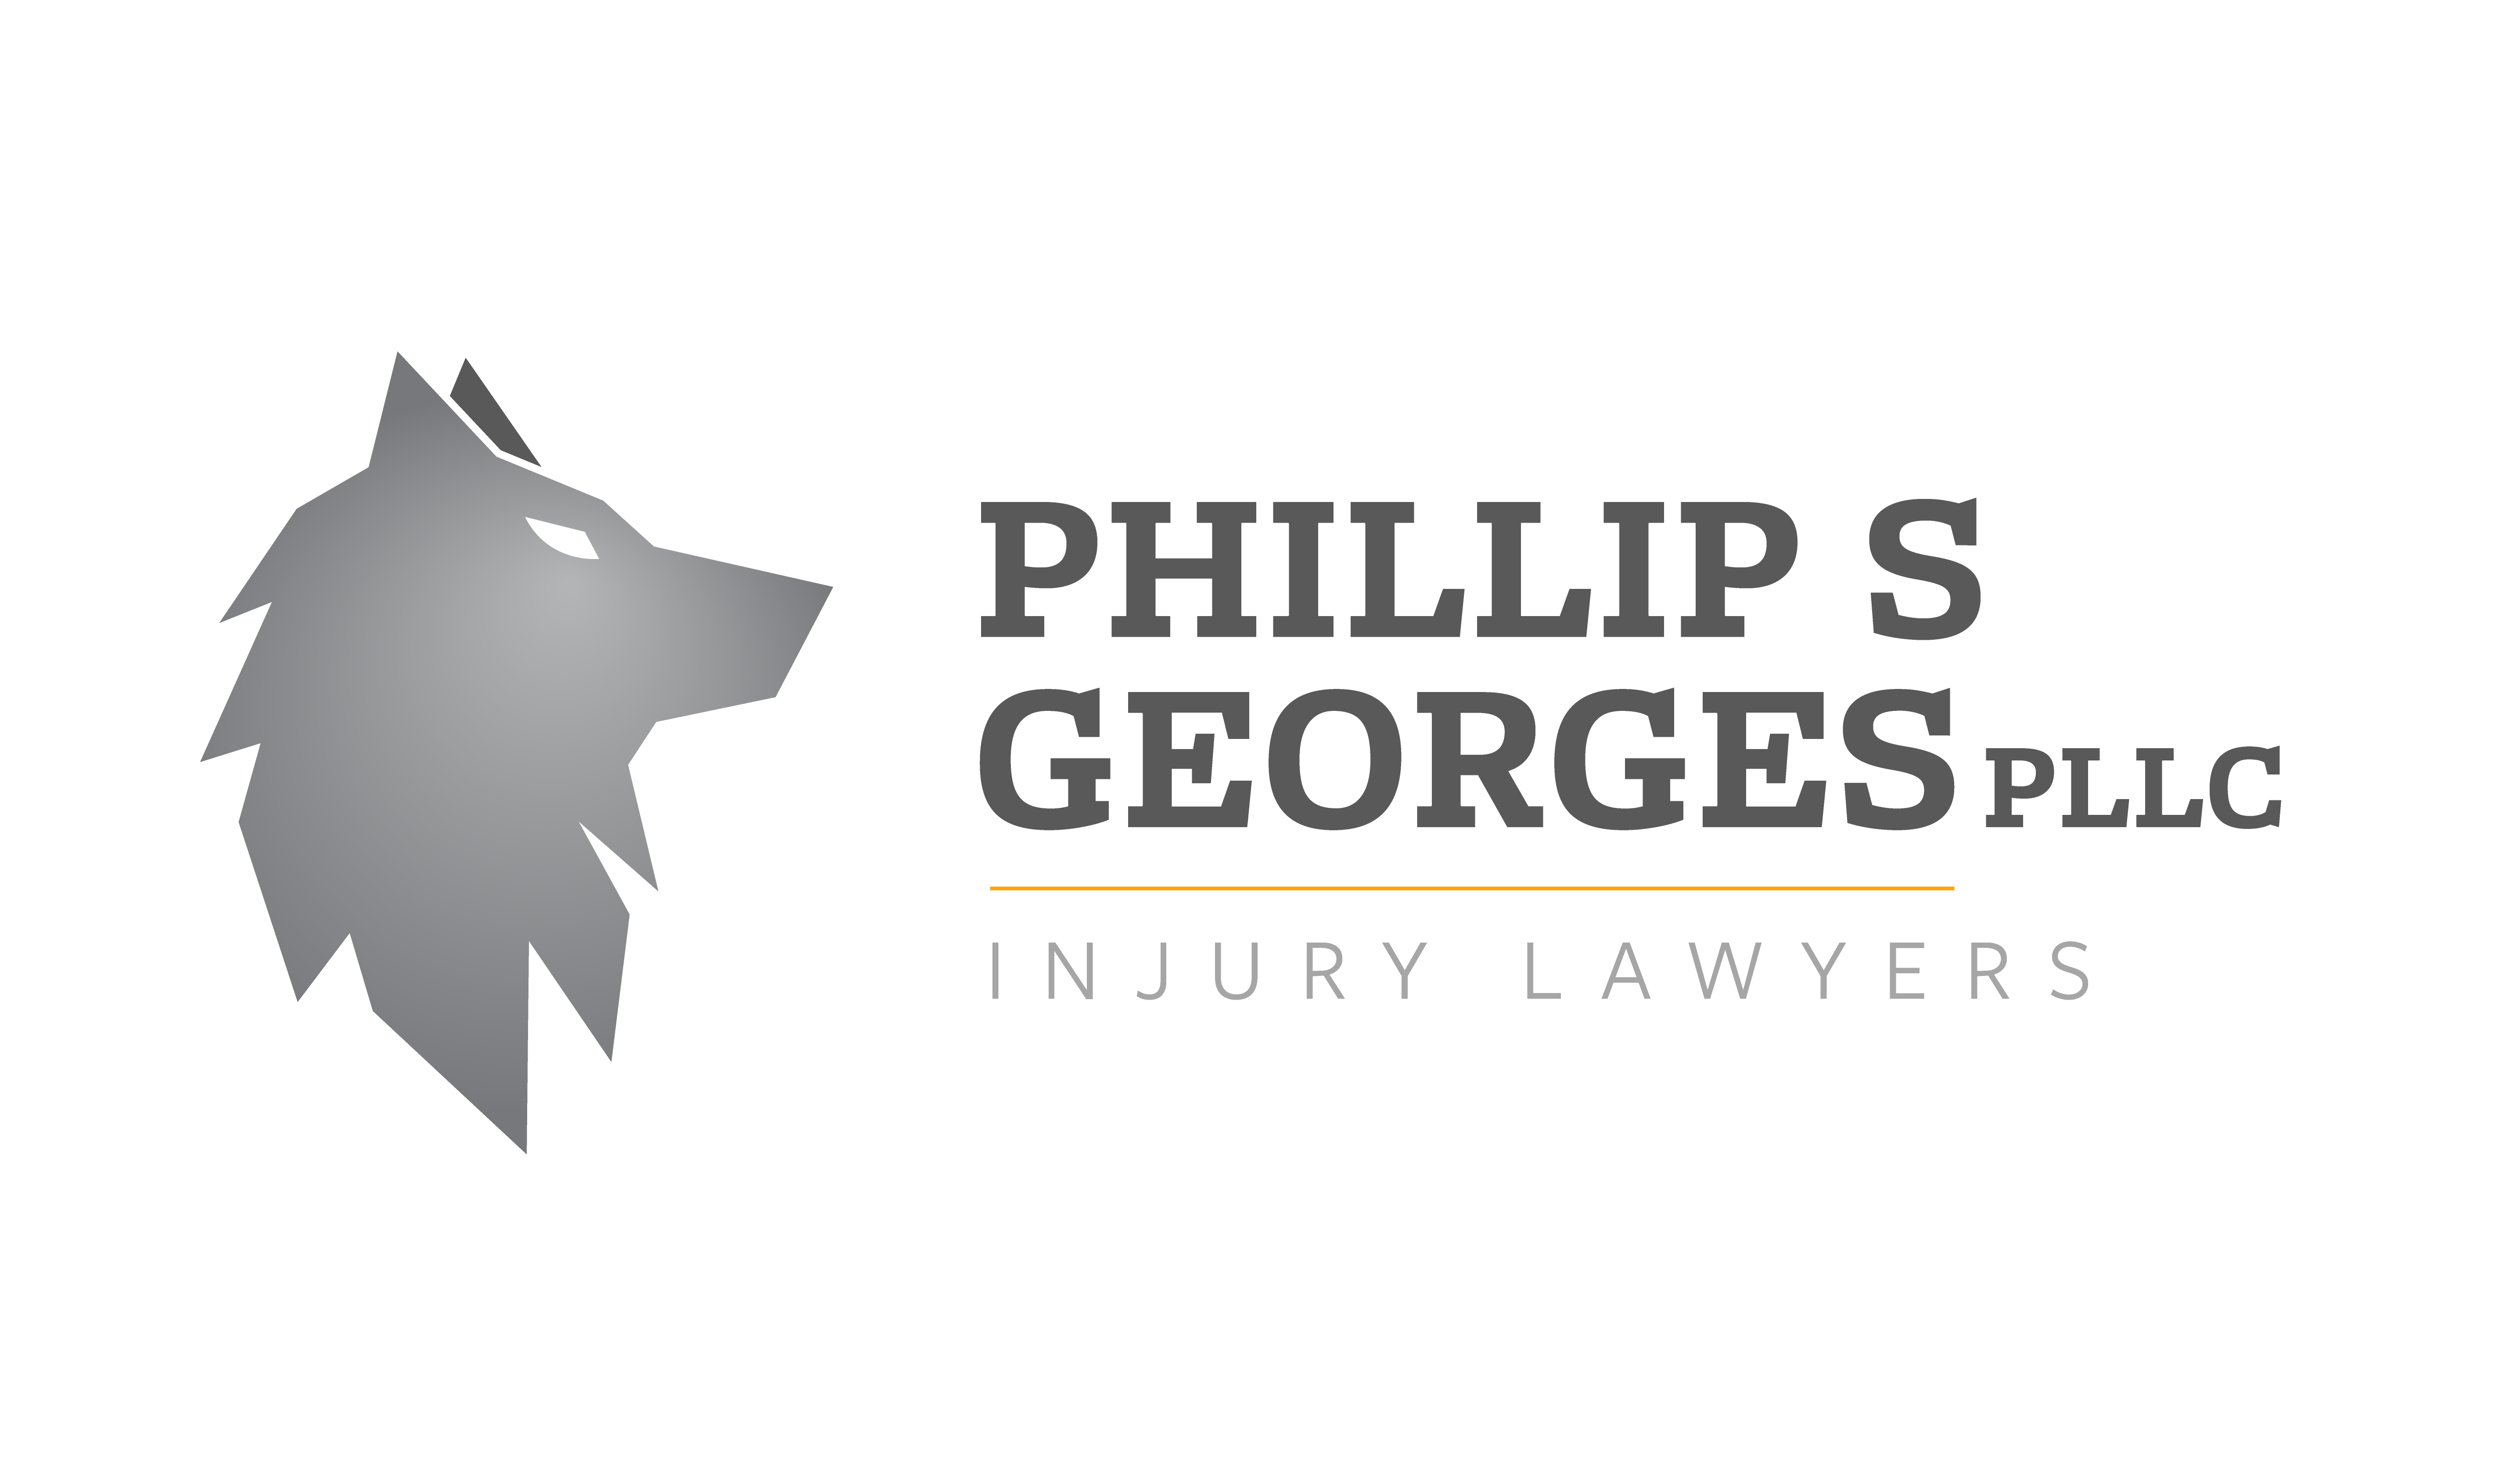 Local Personal Injury Law Firm Awards Scholarships to Deserving Students in Tennessee